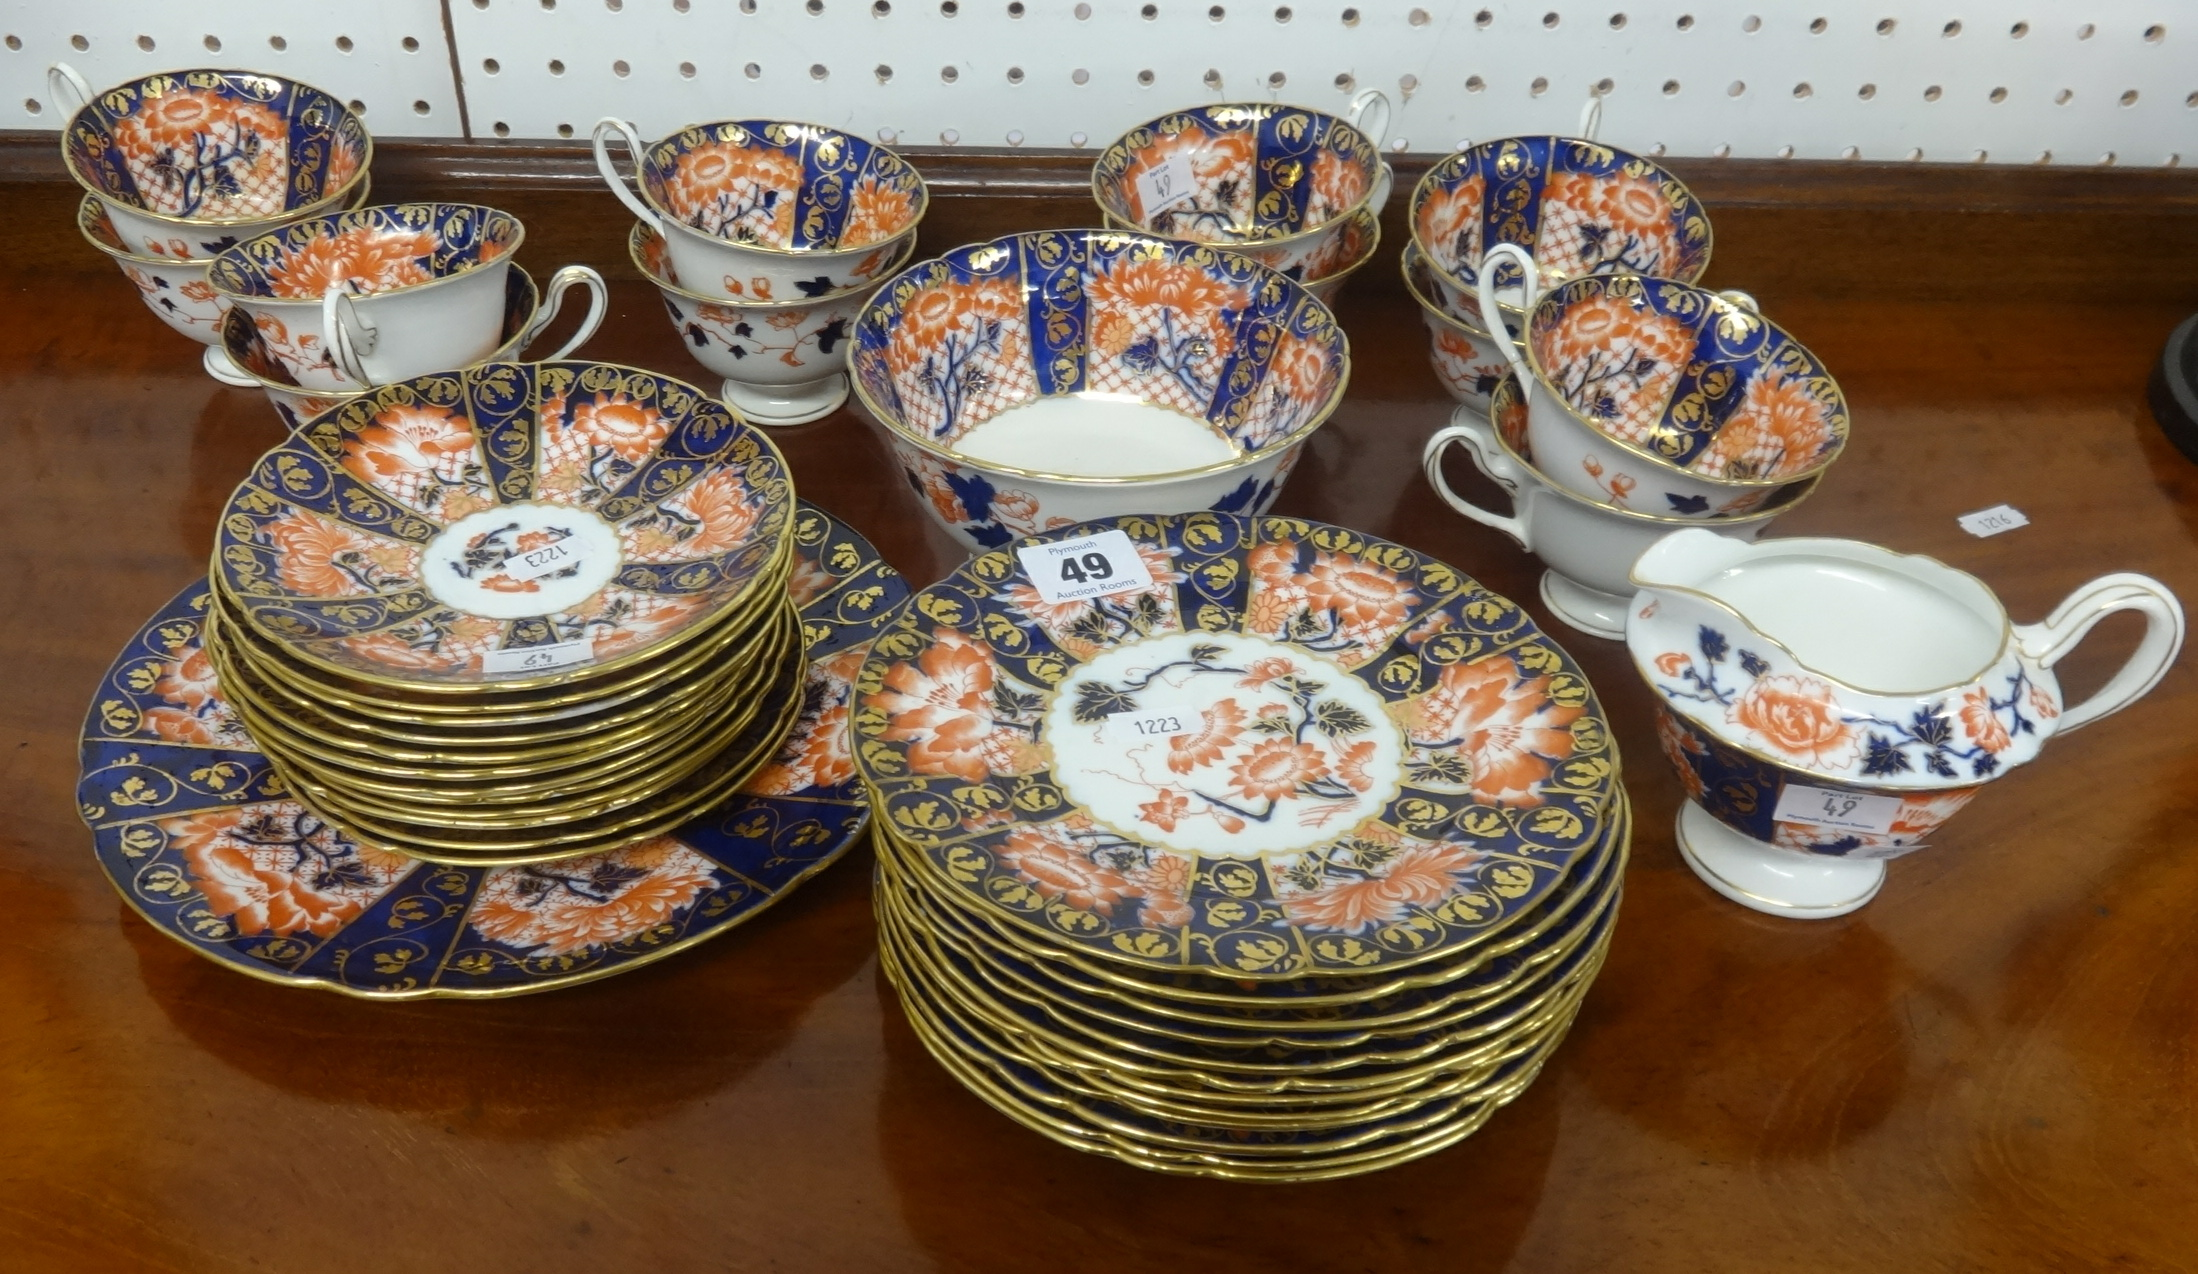 Lot 049 - An early 20th Century Foley china twelve setting porcelain tea service of Imari design.